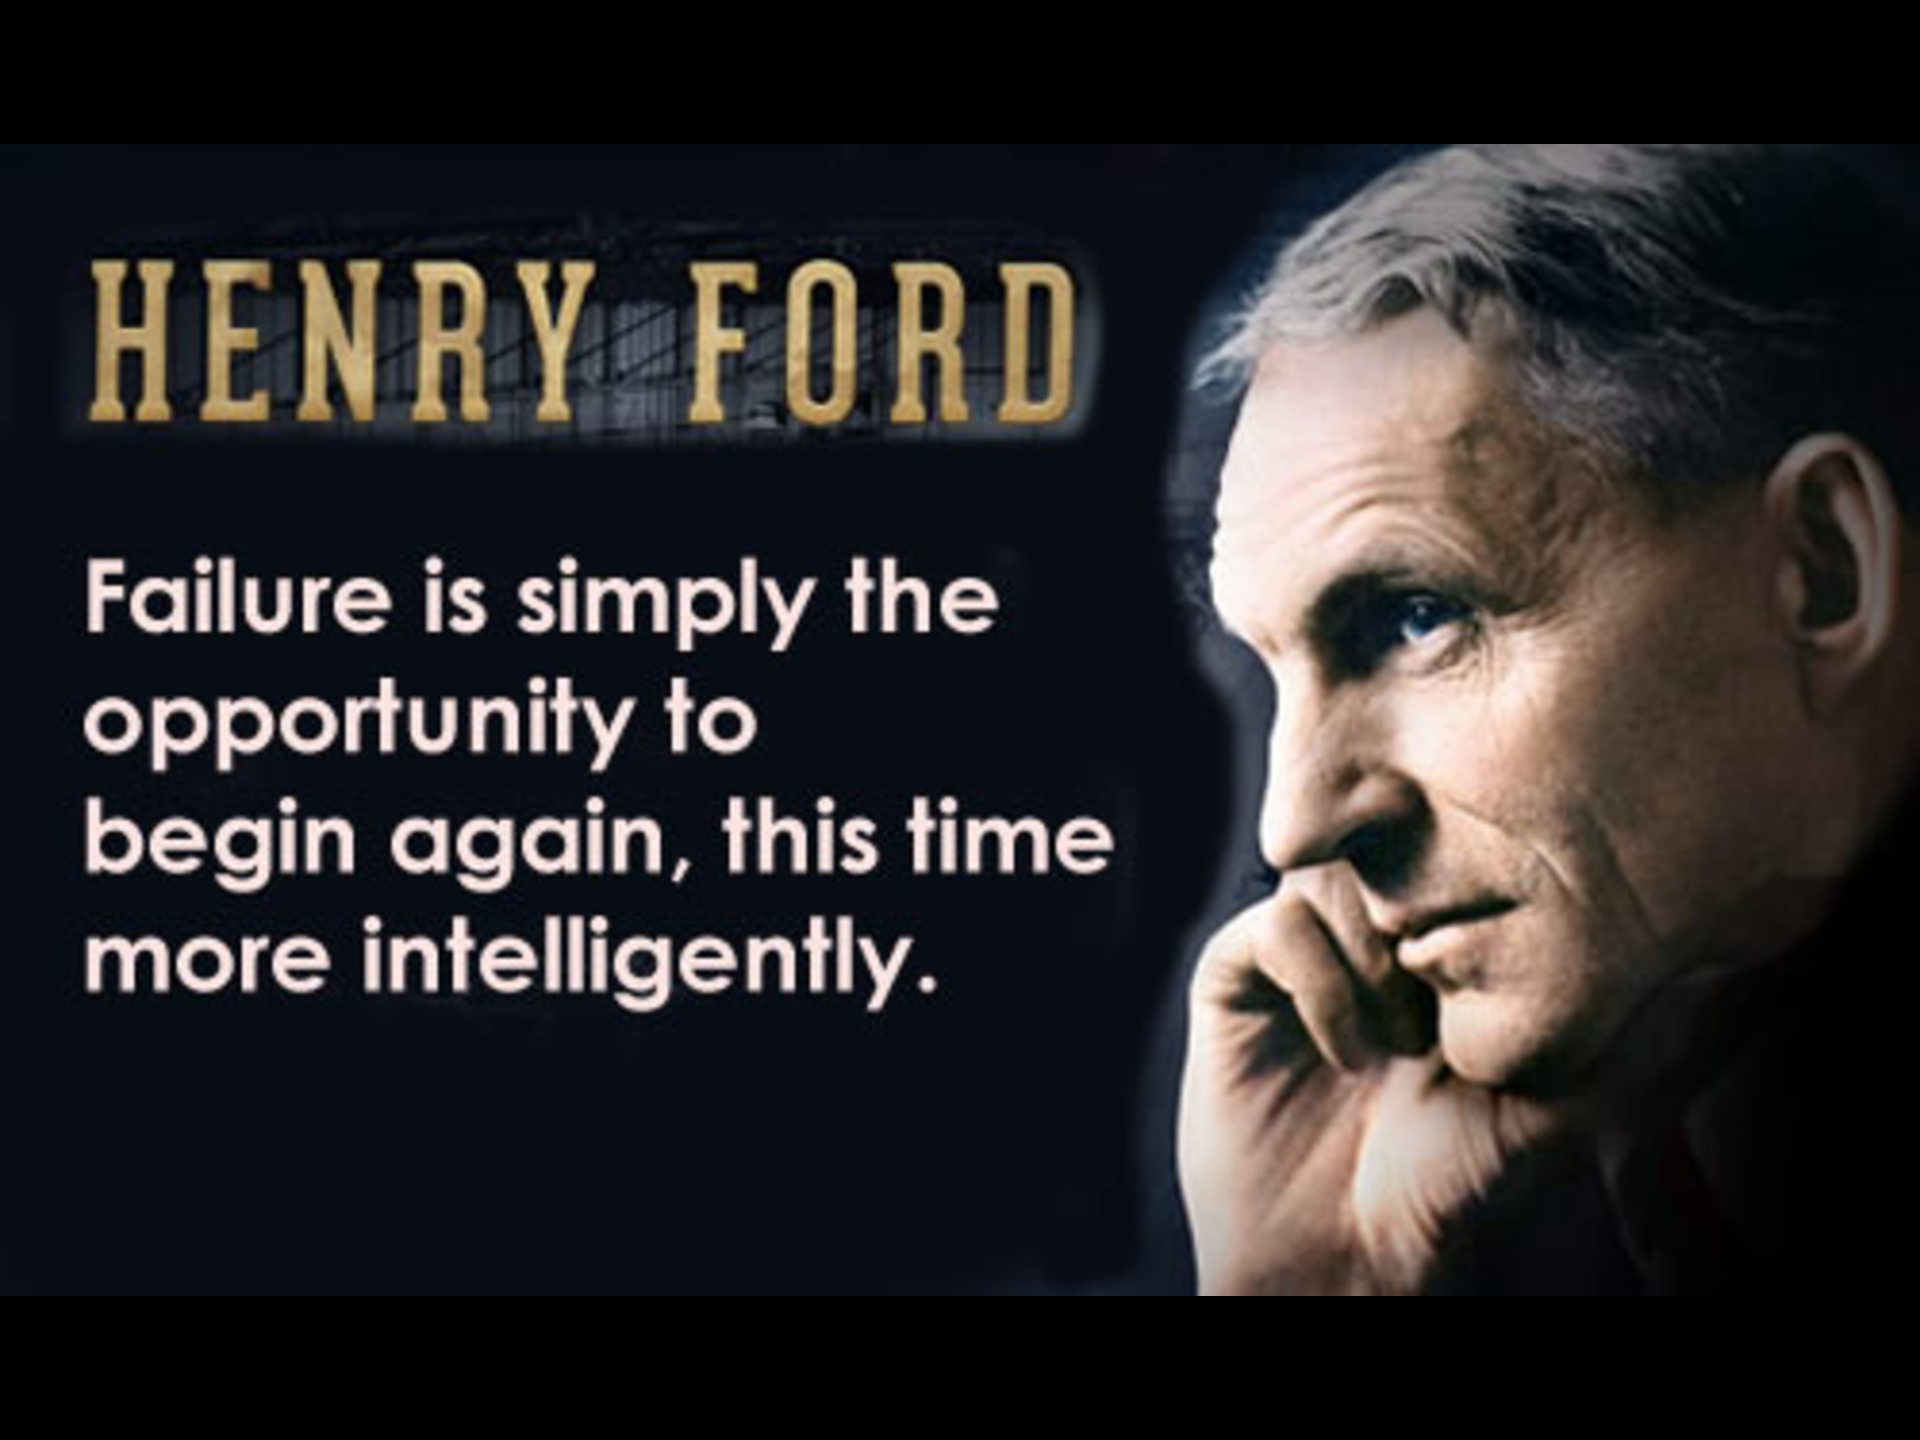 henry ford the leadership qualities Henry ford on leadership henry ford leaves us much to be admired but he also reminds us of the importance of a healthy self-awareness on failure.